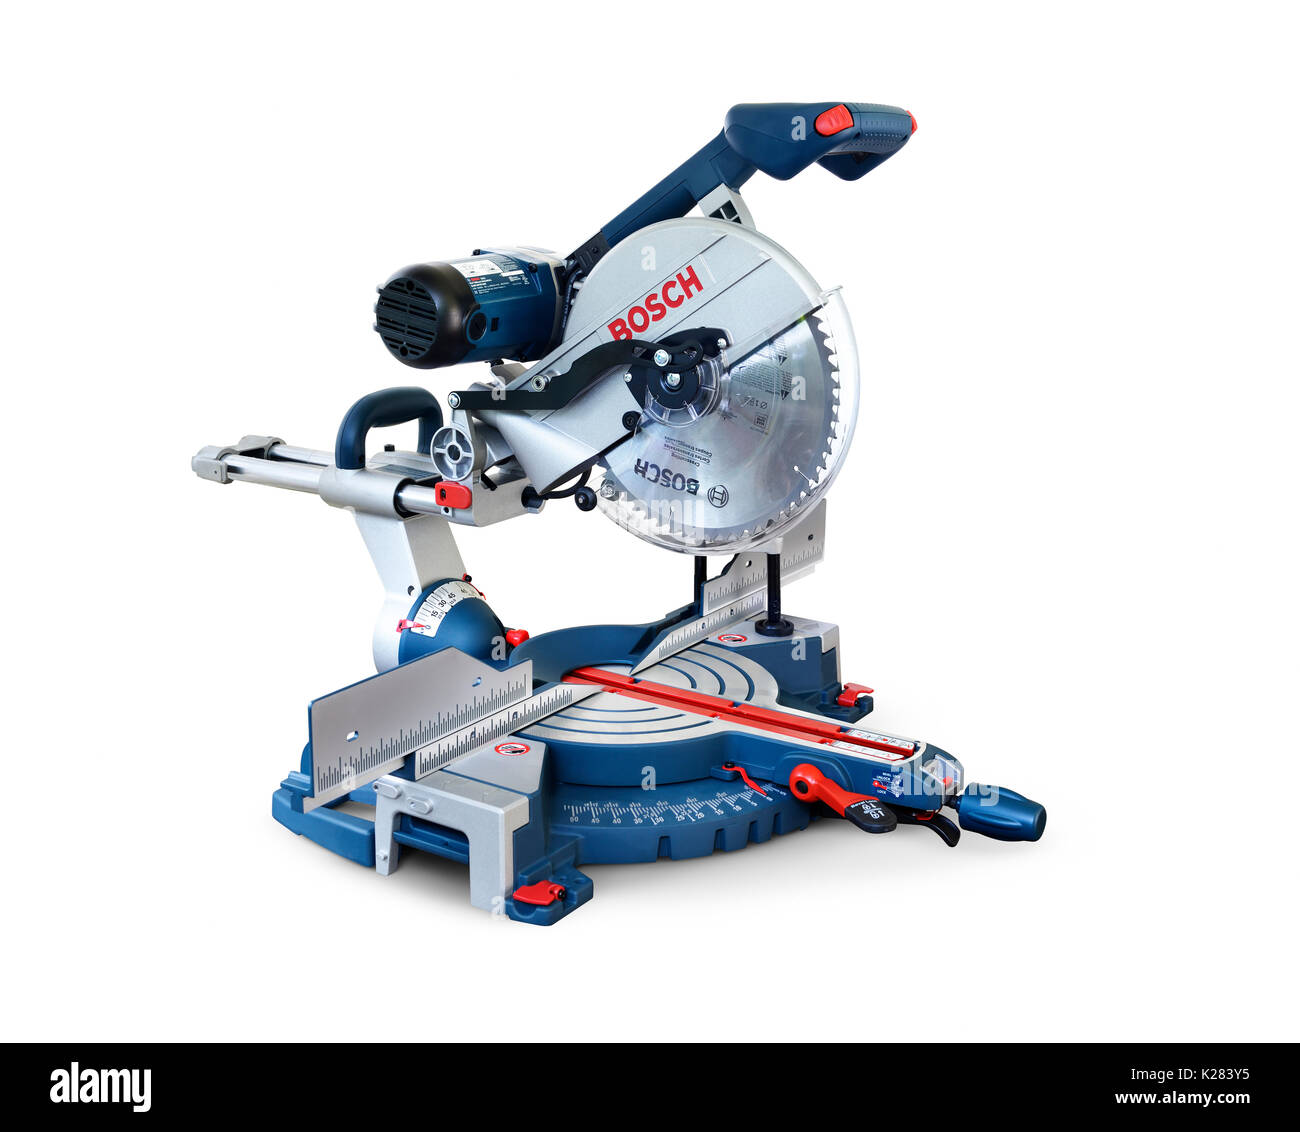 Bosch miter saw, mitre saw power tool isolated on white background with clipping path Stock Photo